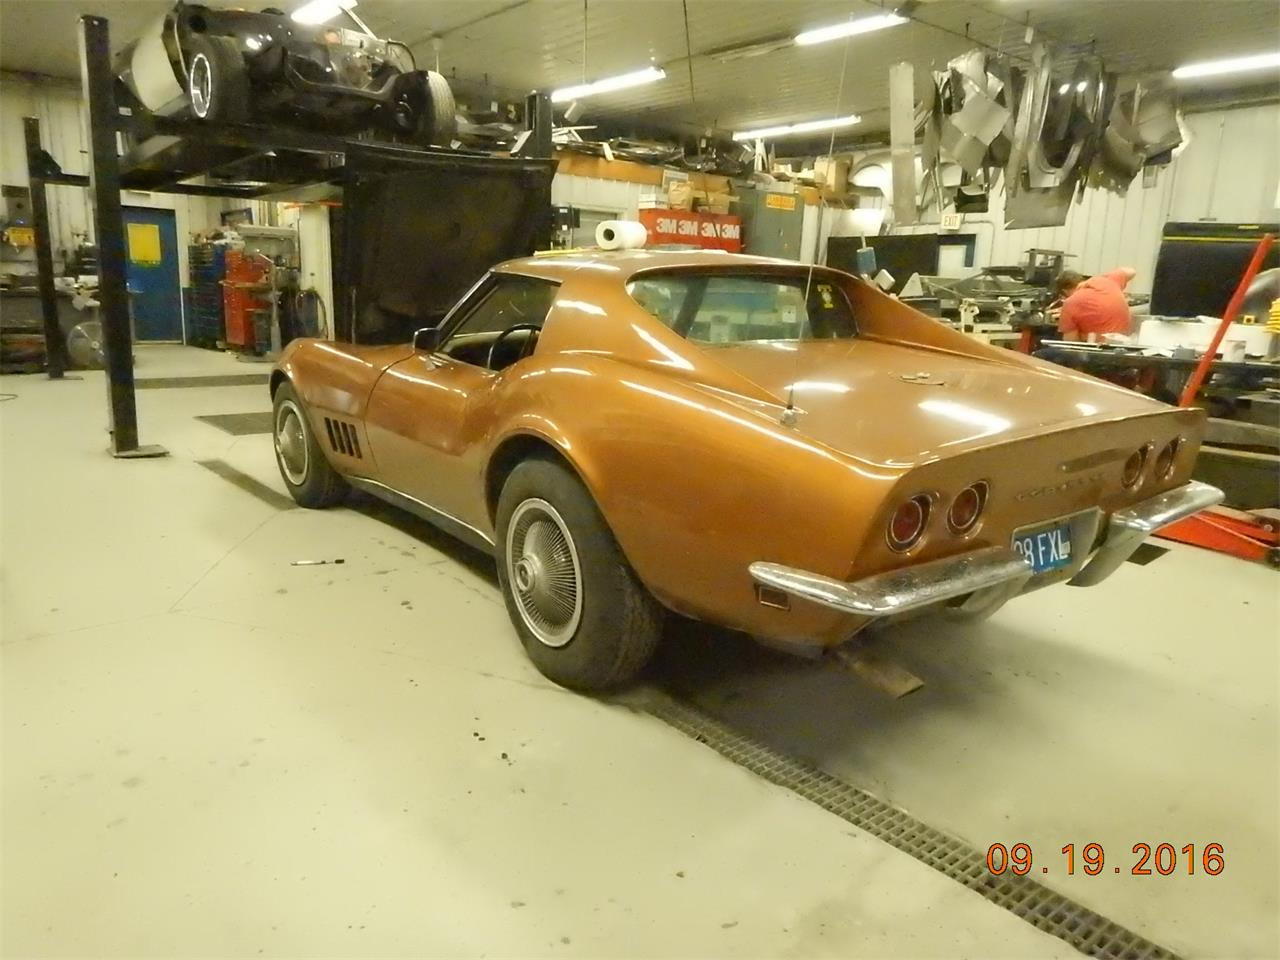 Large Picture of Classic '68 Chevrolet Corvette located in Michigan - $21,000.00 Offered by a Private Seller - LHRE